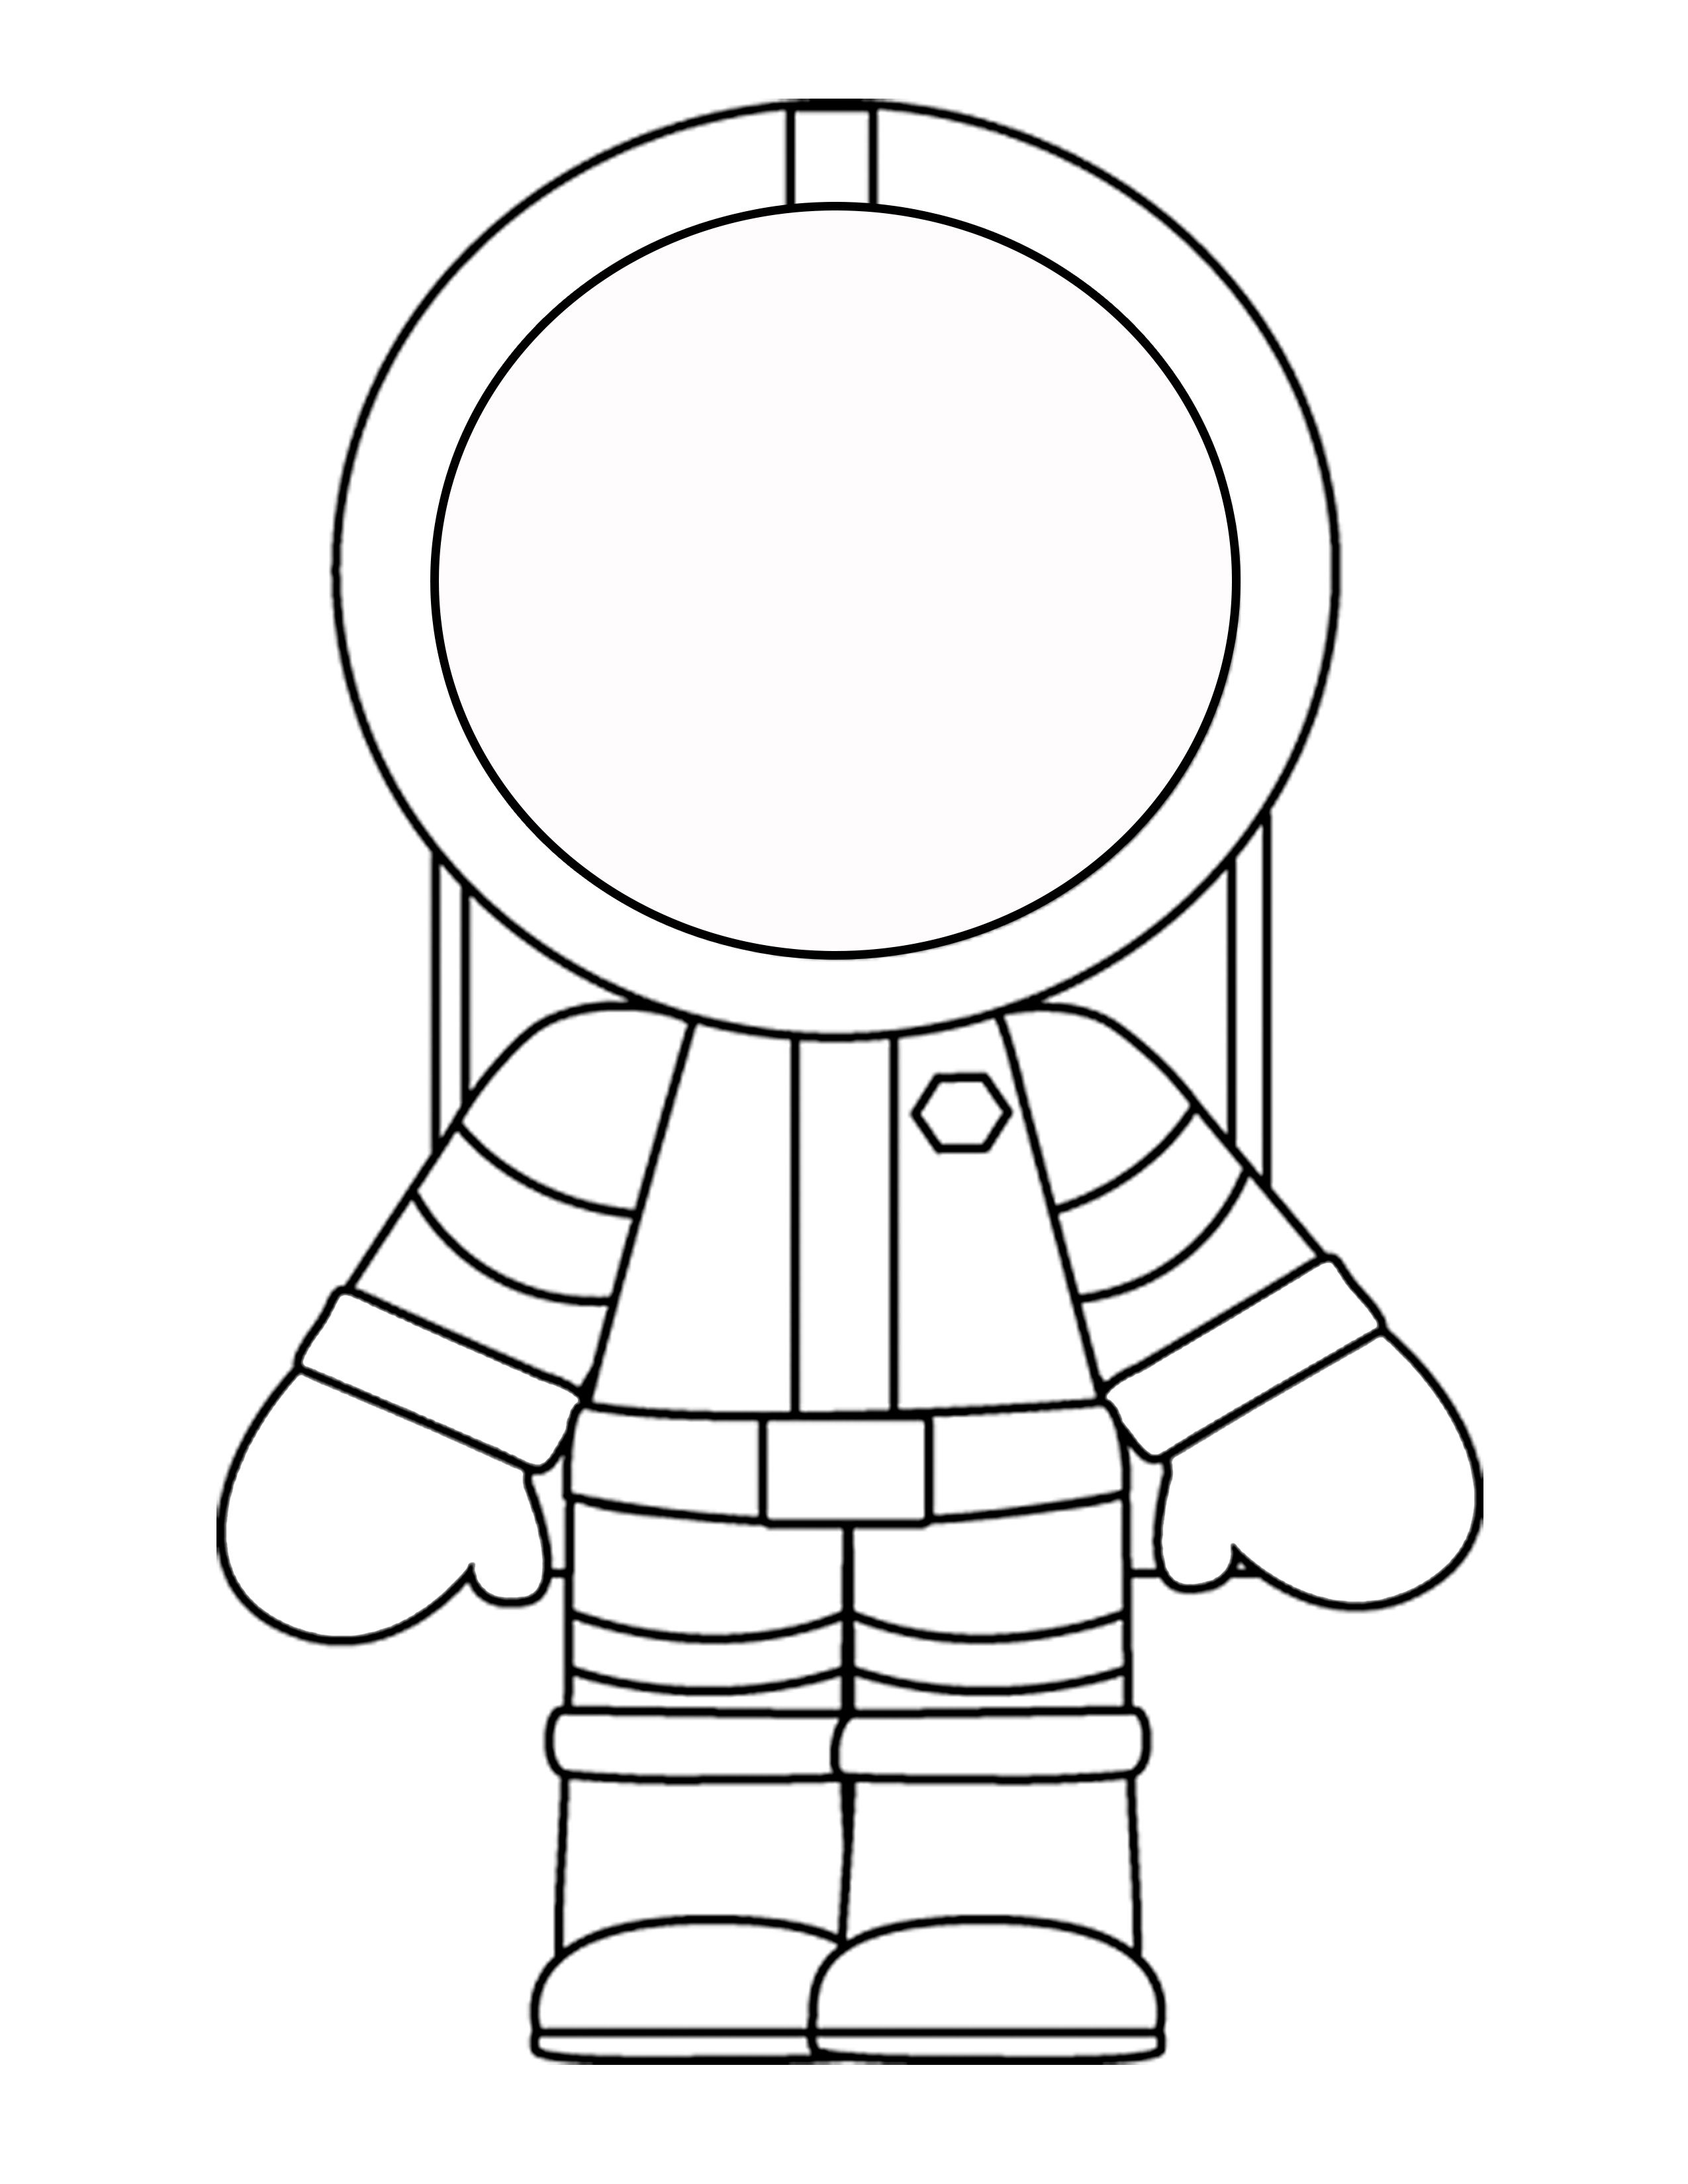 Printable Template For The Astronaut Mini Book Craft